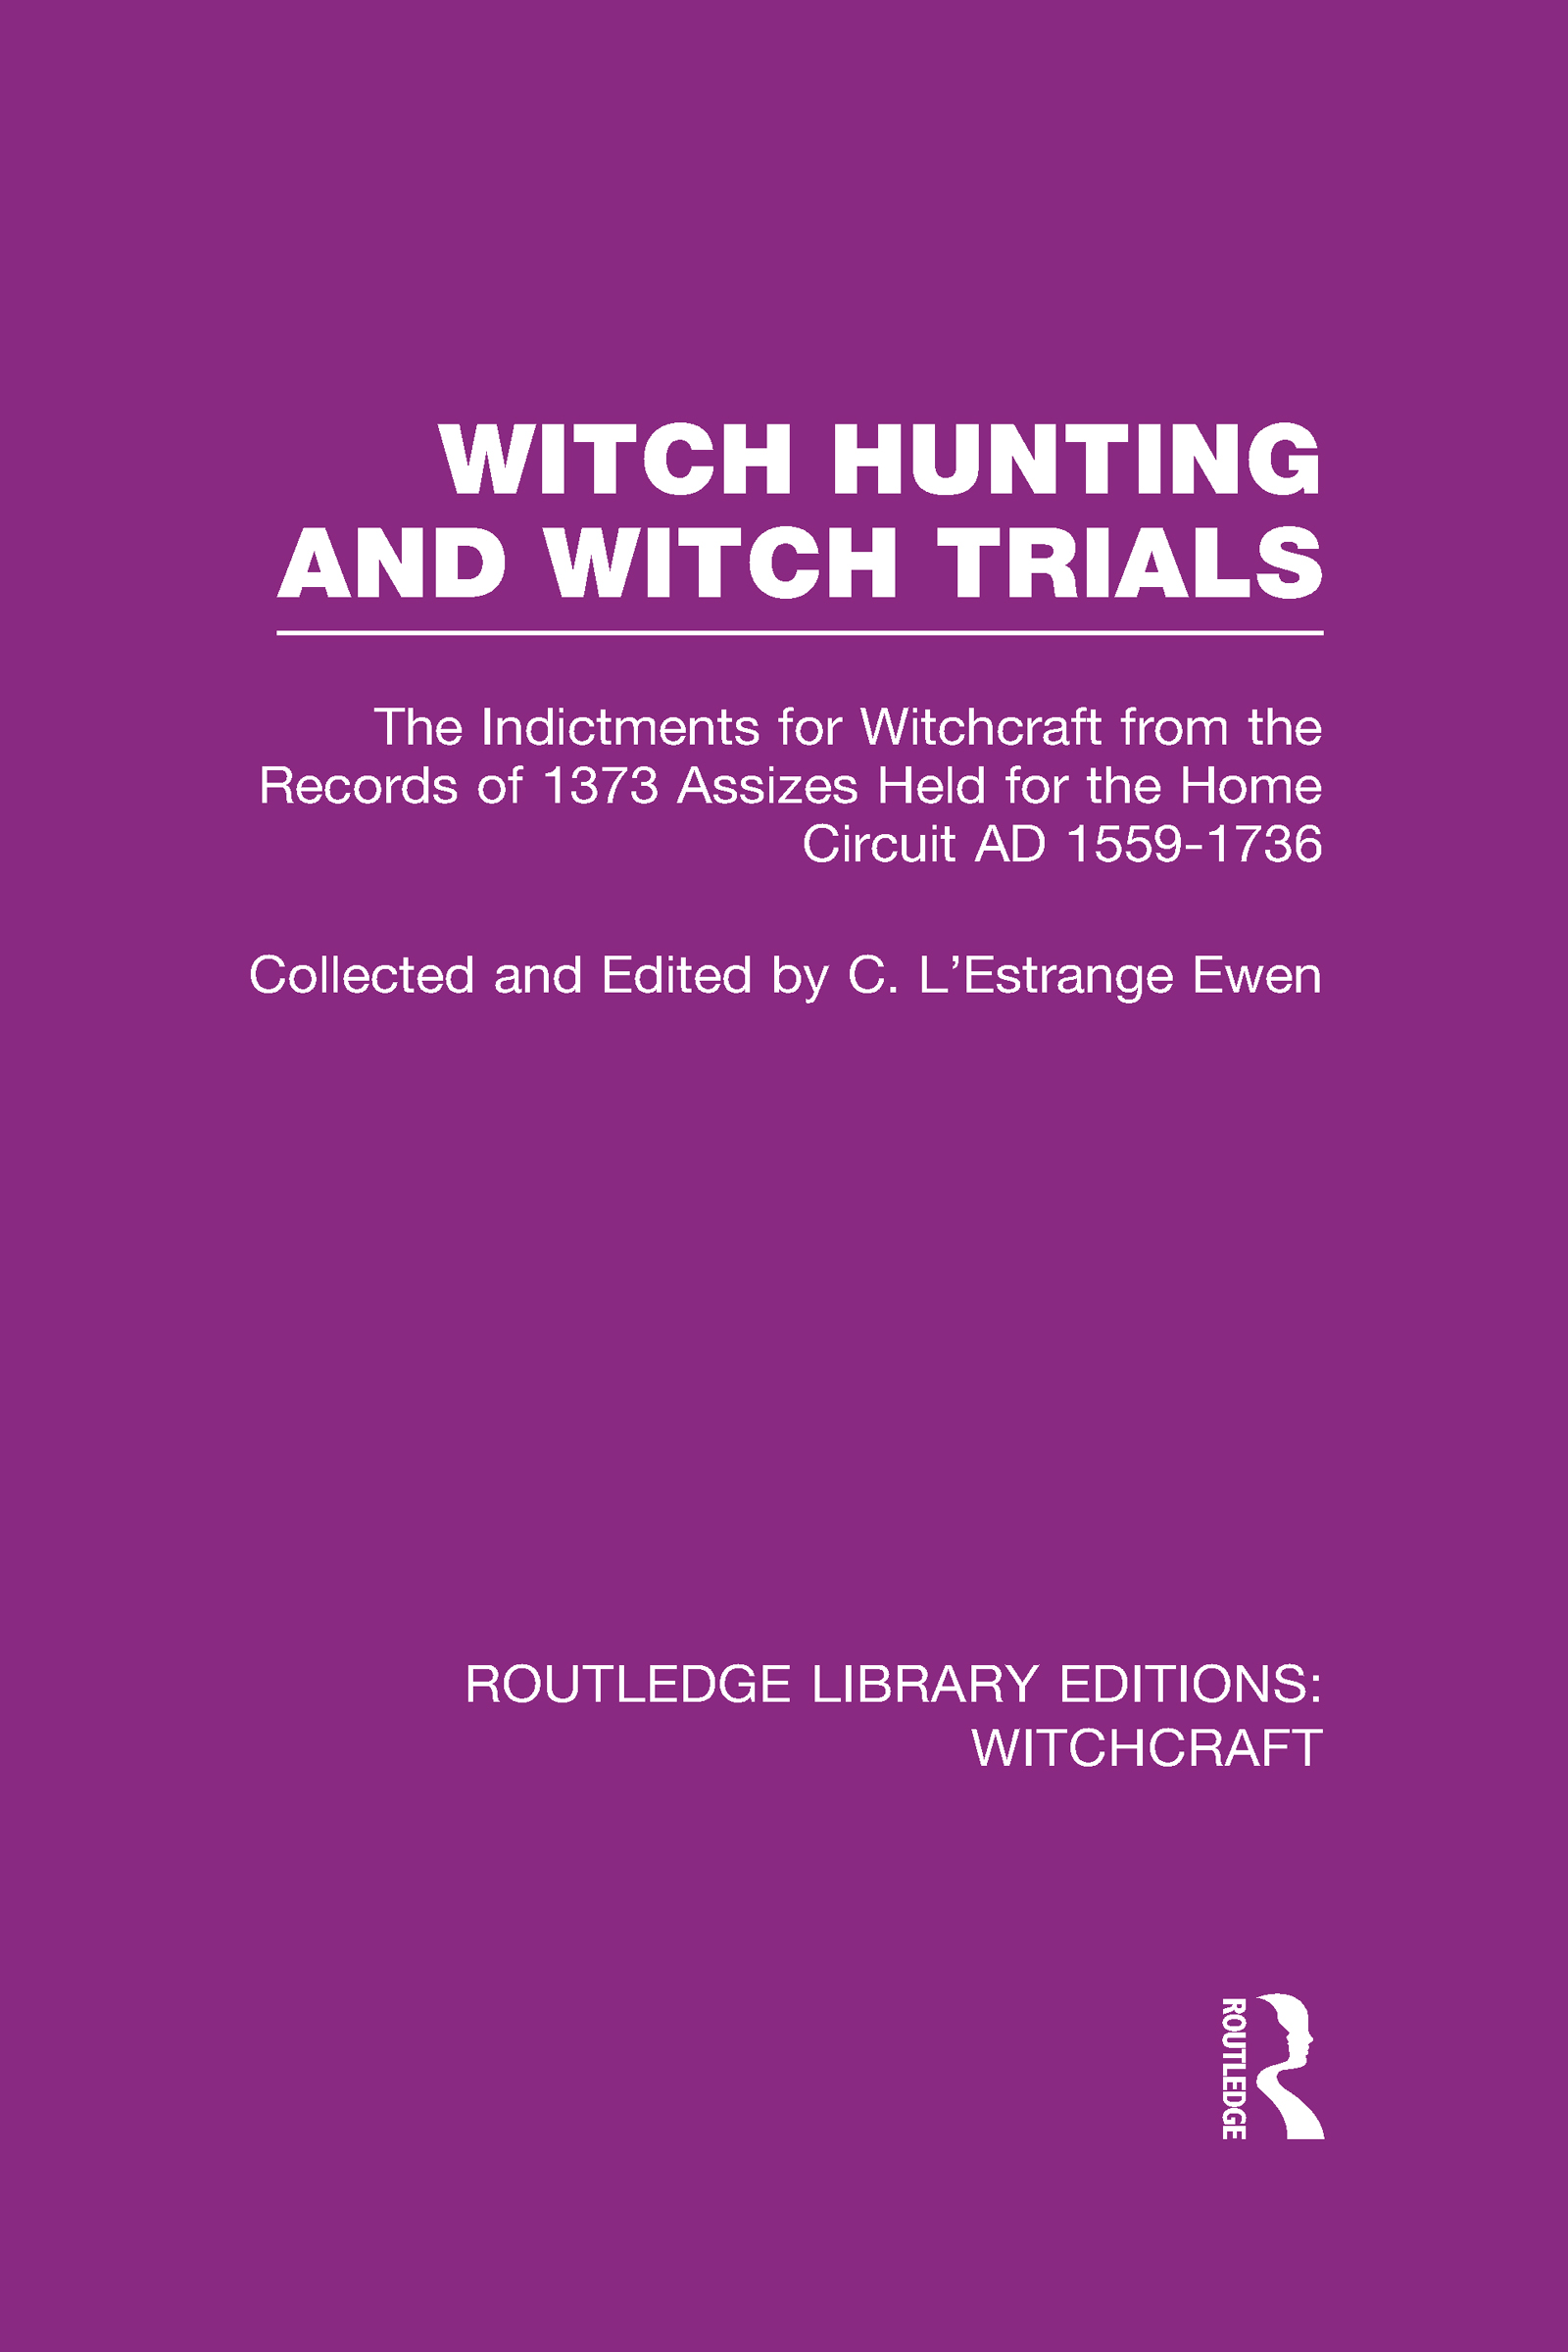 Witch Hunting and Witch Trials (RLE Witchcraft): The Indictments for Witchcraft from the Records of the 1373 Assizes Held from the Home Court 1559-1736 AD (Hardback) book cover